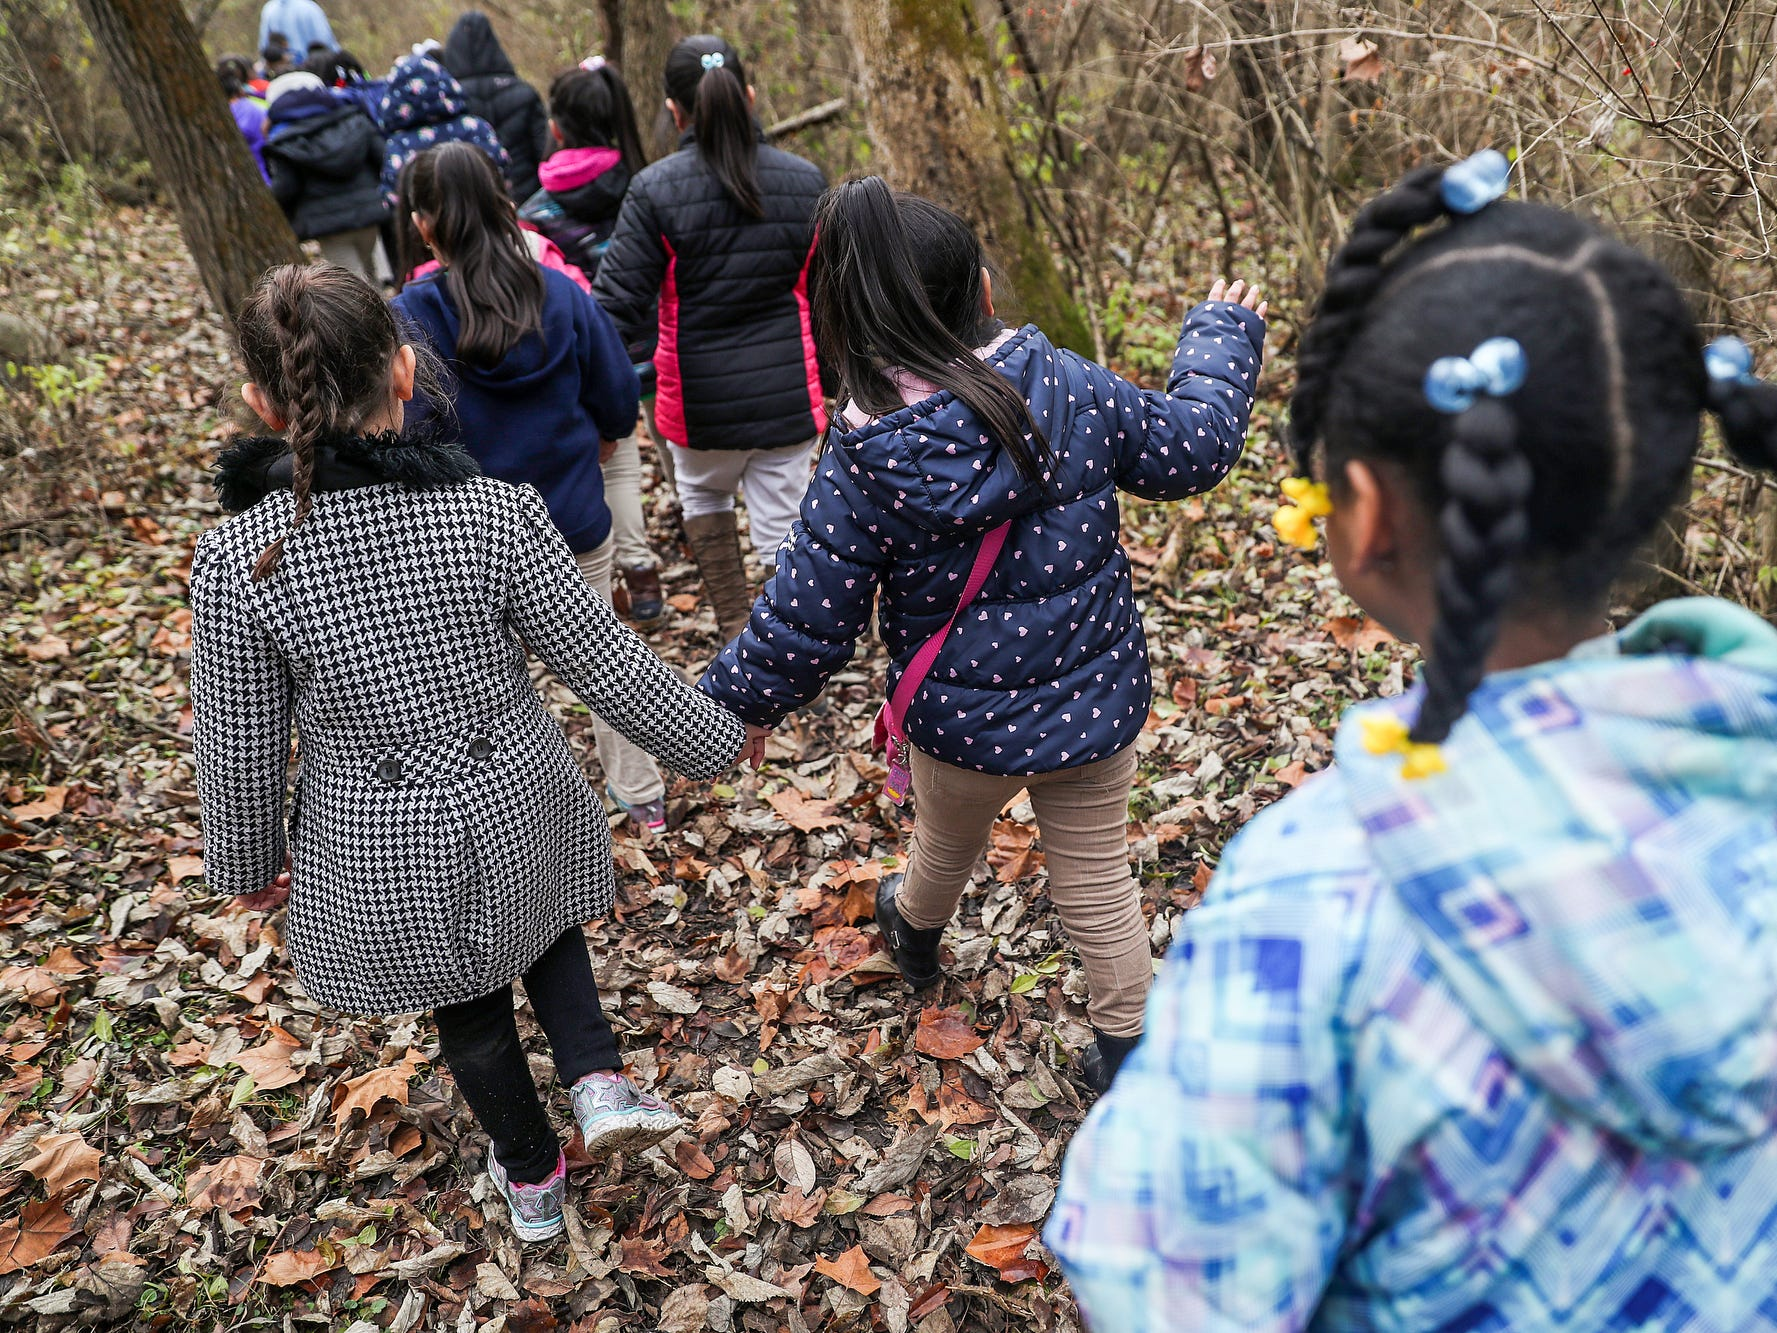 Second graders from Global Preparatory Academy take a hike through the woods on their field trip to Jameson Camp in Indianapolis, Friday, Nov. 30, 2018.